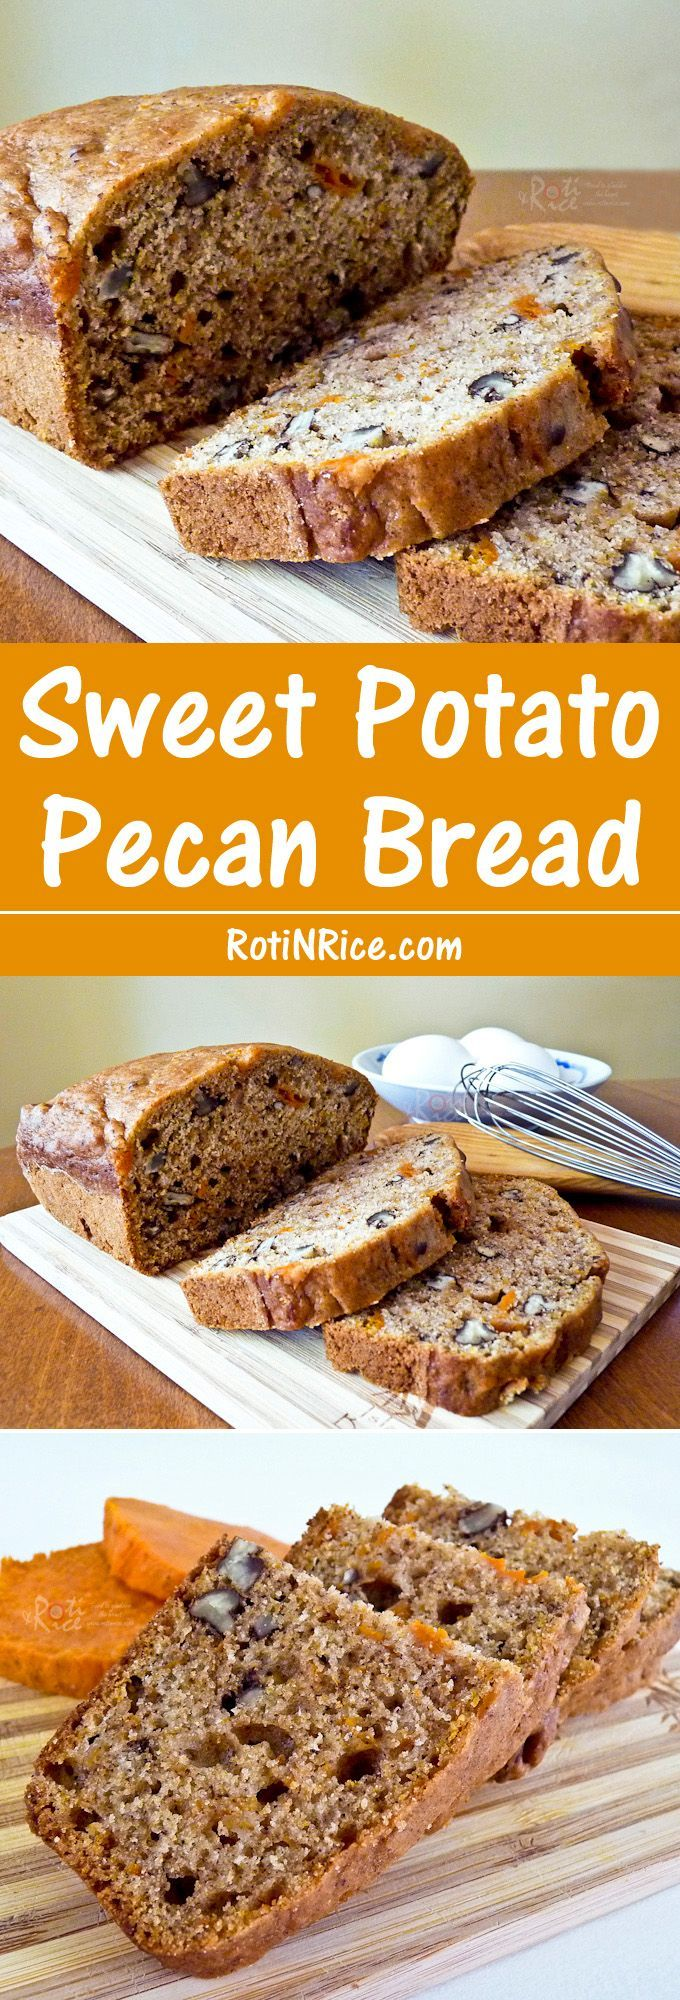 This Sweet Potato Pecan Bread was inspired by the autumn favorite, candied sweet potatoes. It is moist, fragrant, and delicious served warm. Definitely make ahead and freeze leftovers if any. | RotiNRice.com